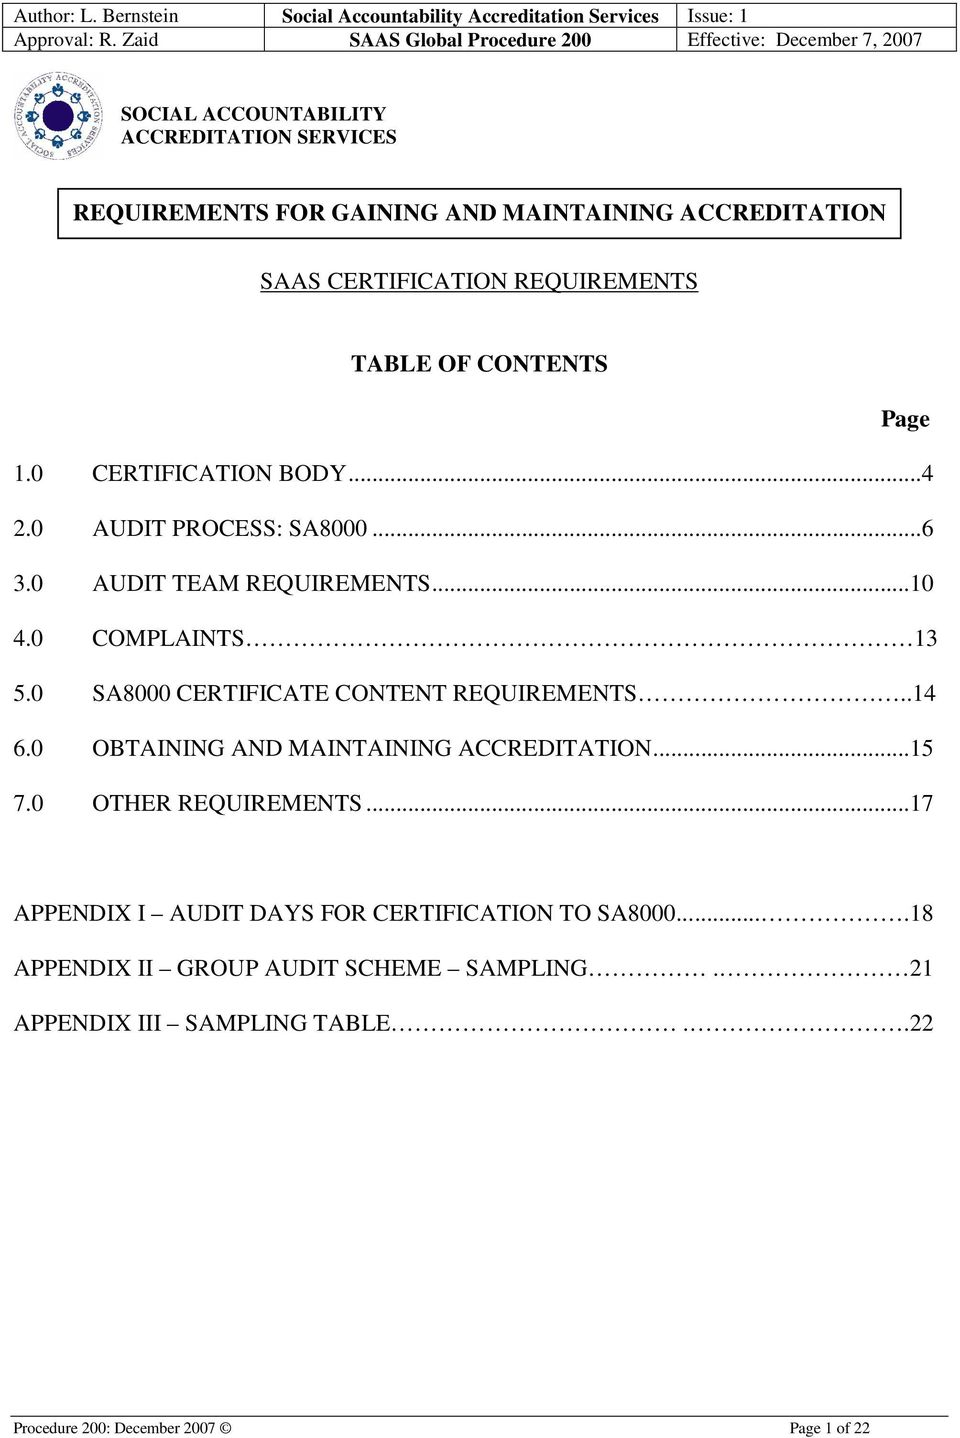 Requirements For Gaining And Maintaining Accreditation Saas